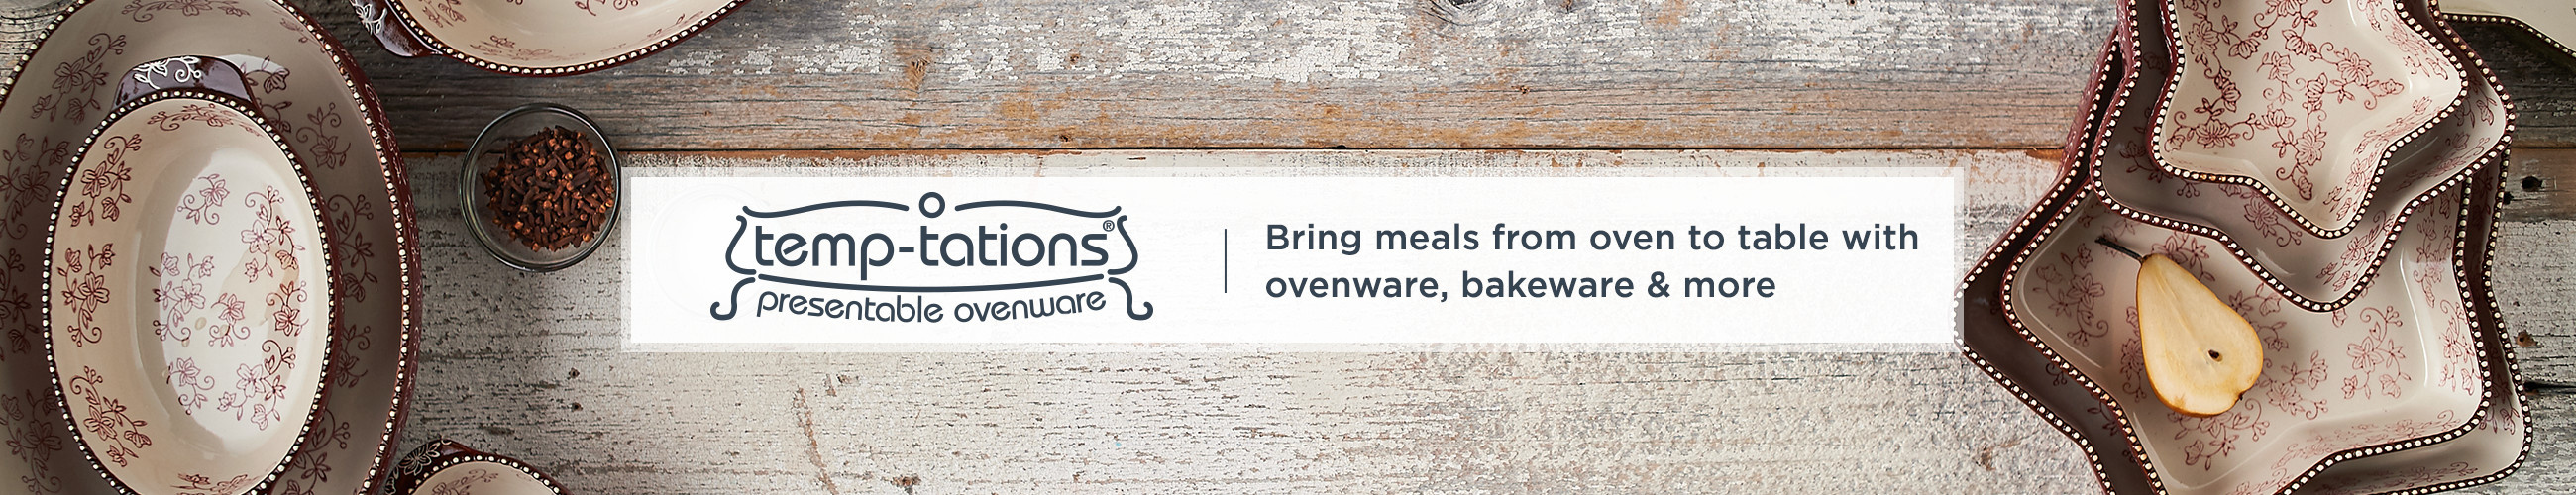 Temp-tations, Bring meals from oven to table with ovenware, bakeware & more